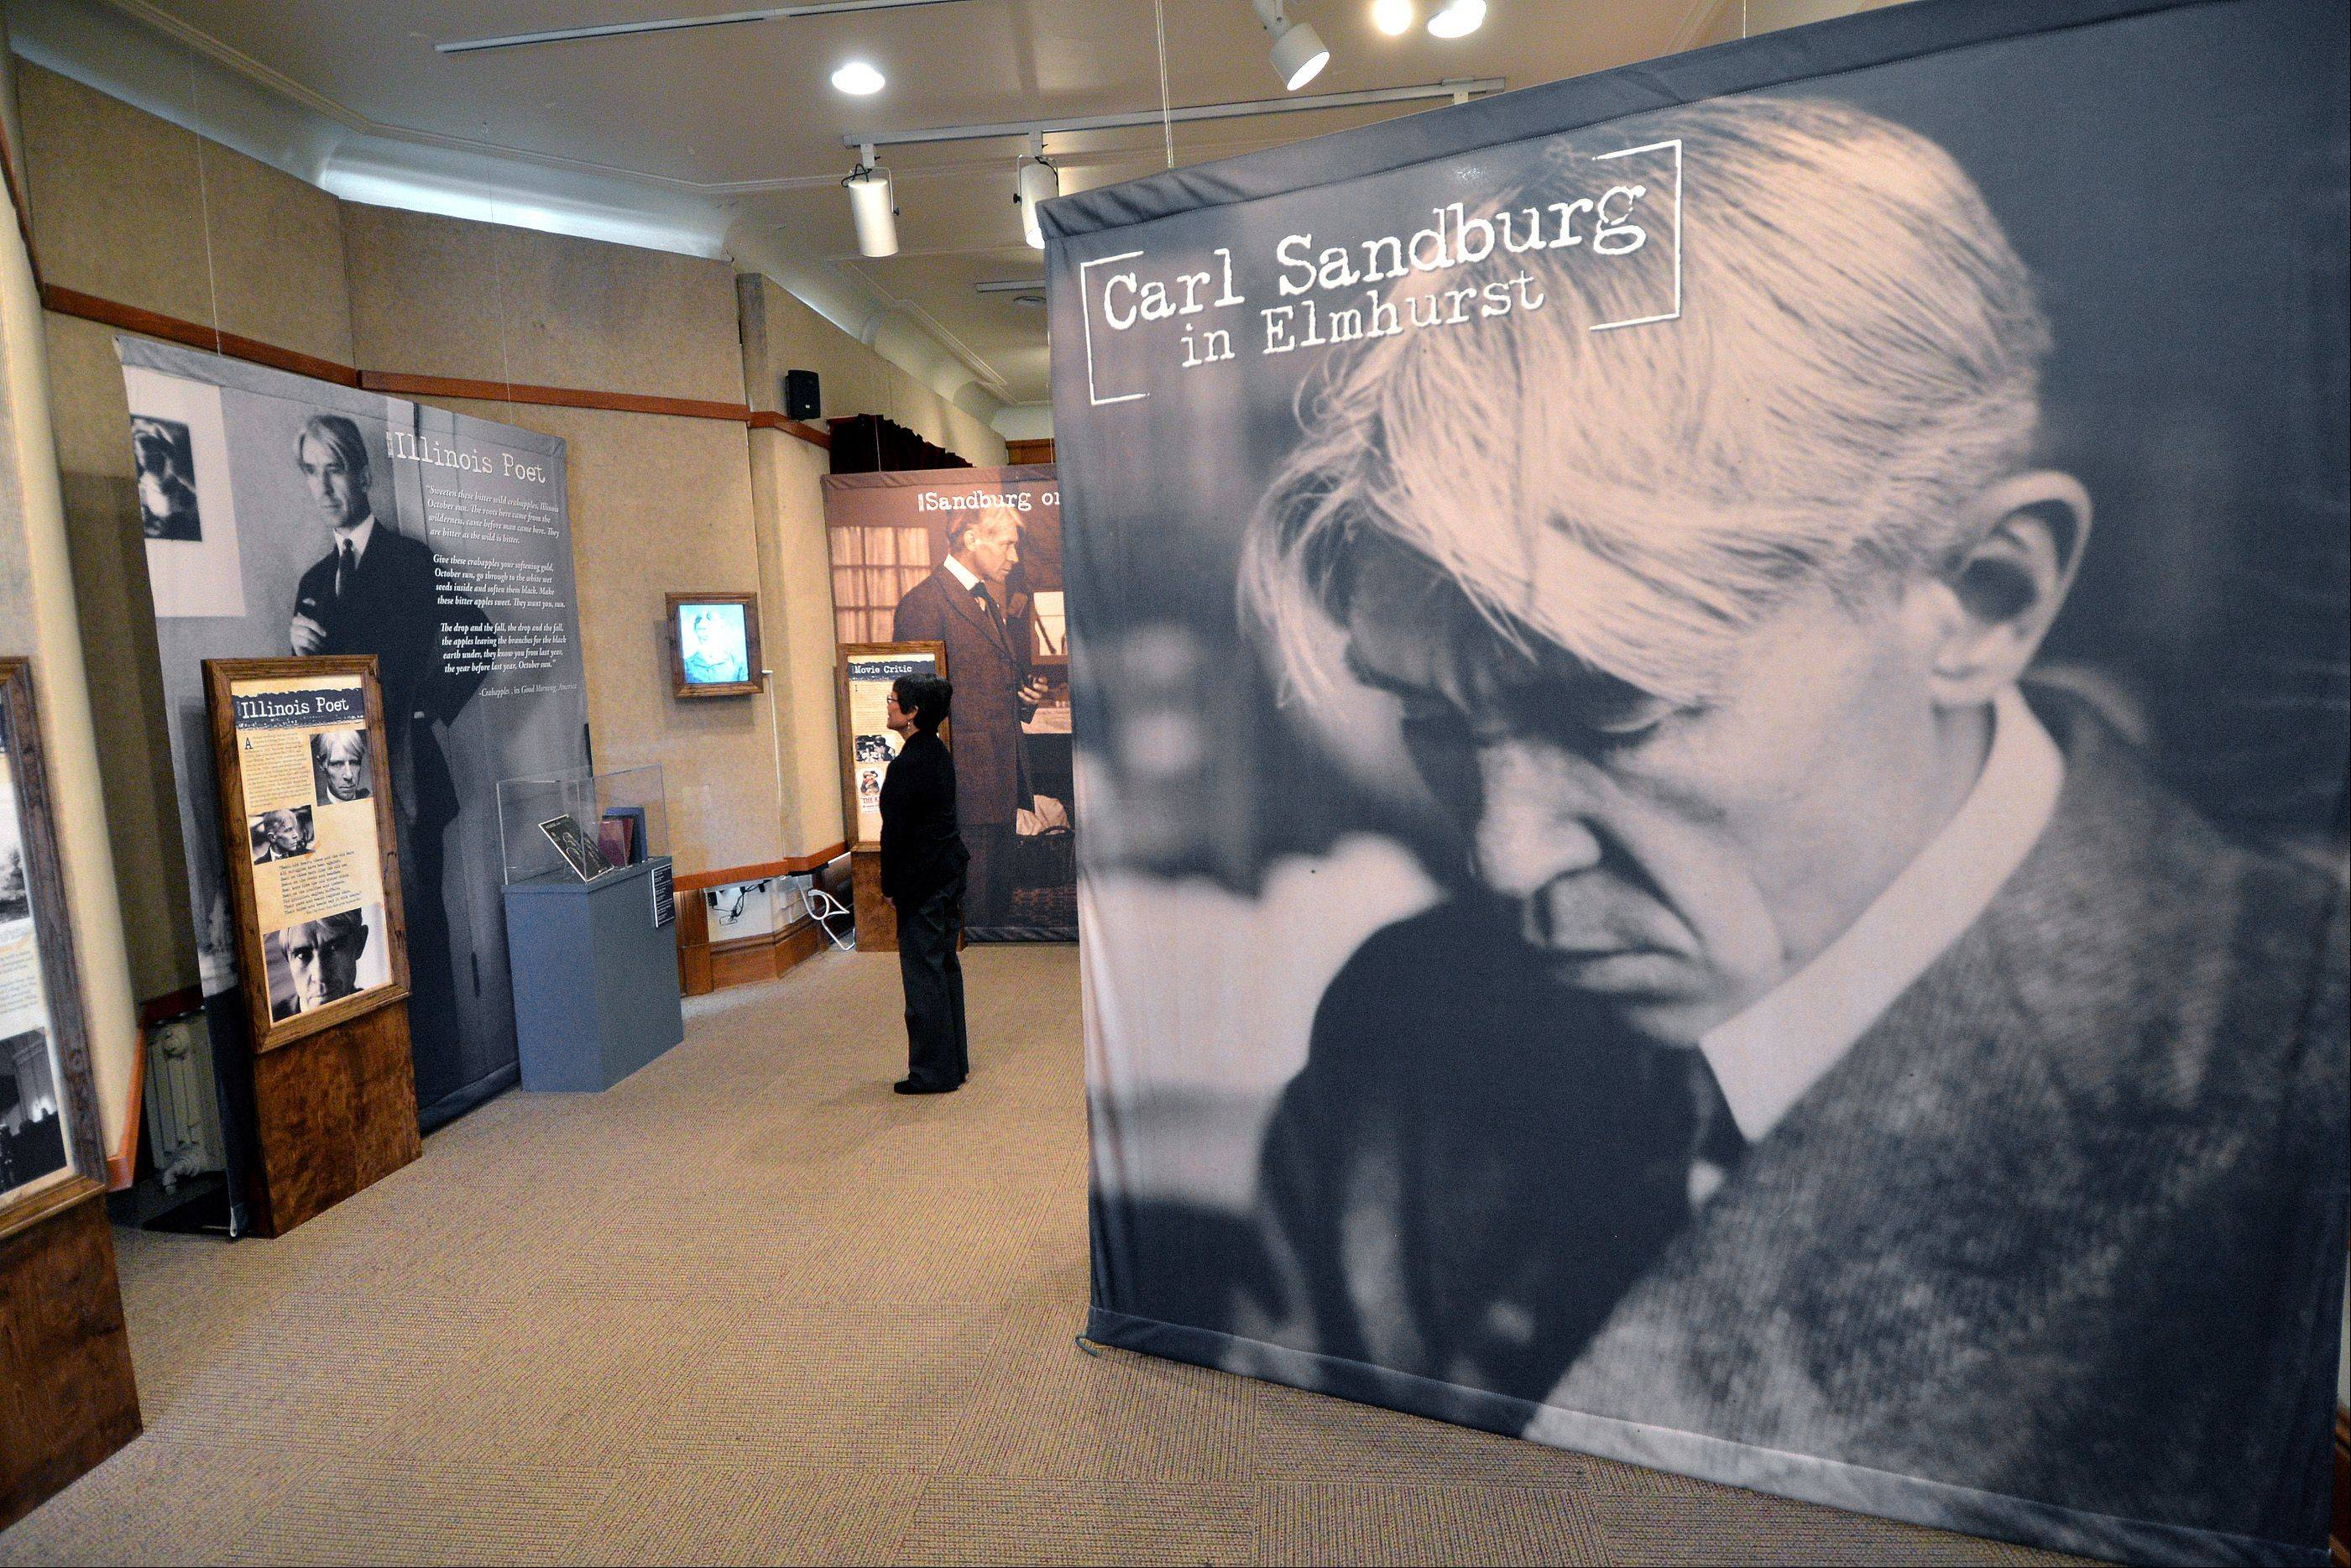 The exhibit �Carl Sandburg in Elmhurst� opened this month and will remain up through April 20, 2014, at the Elmhurst Historical Museum.